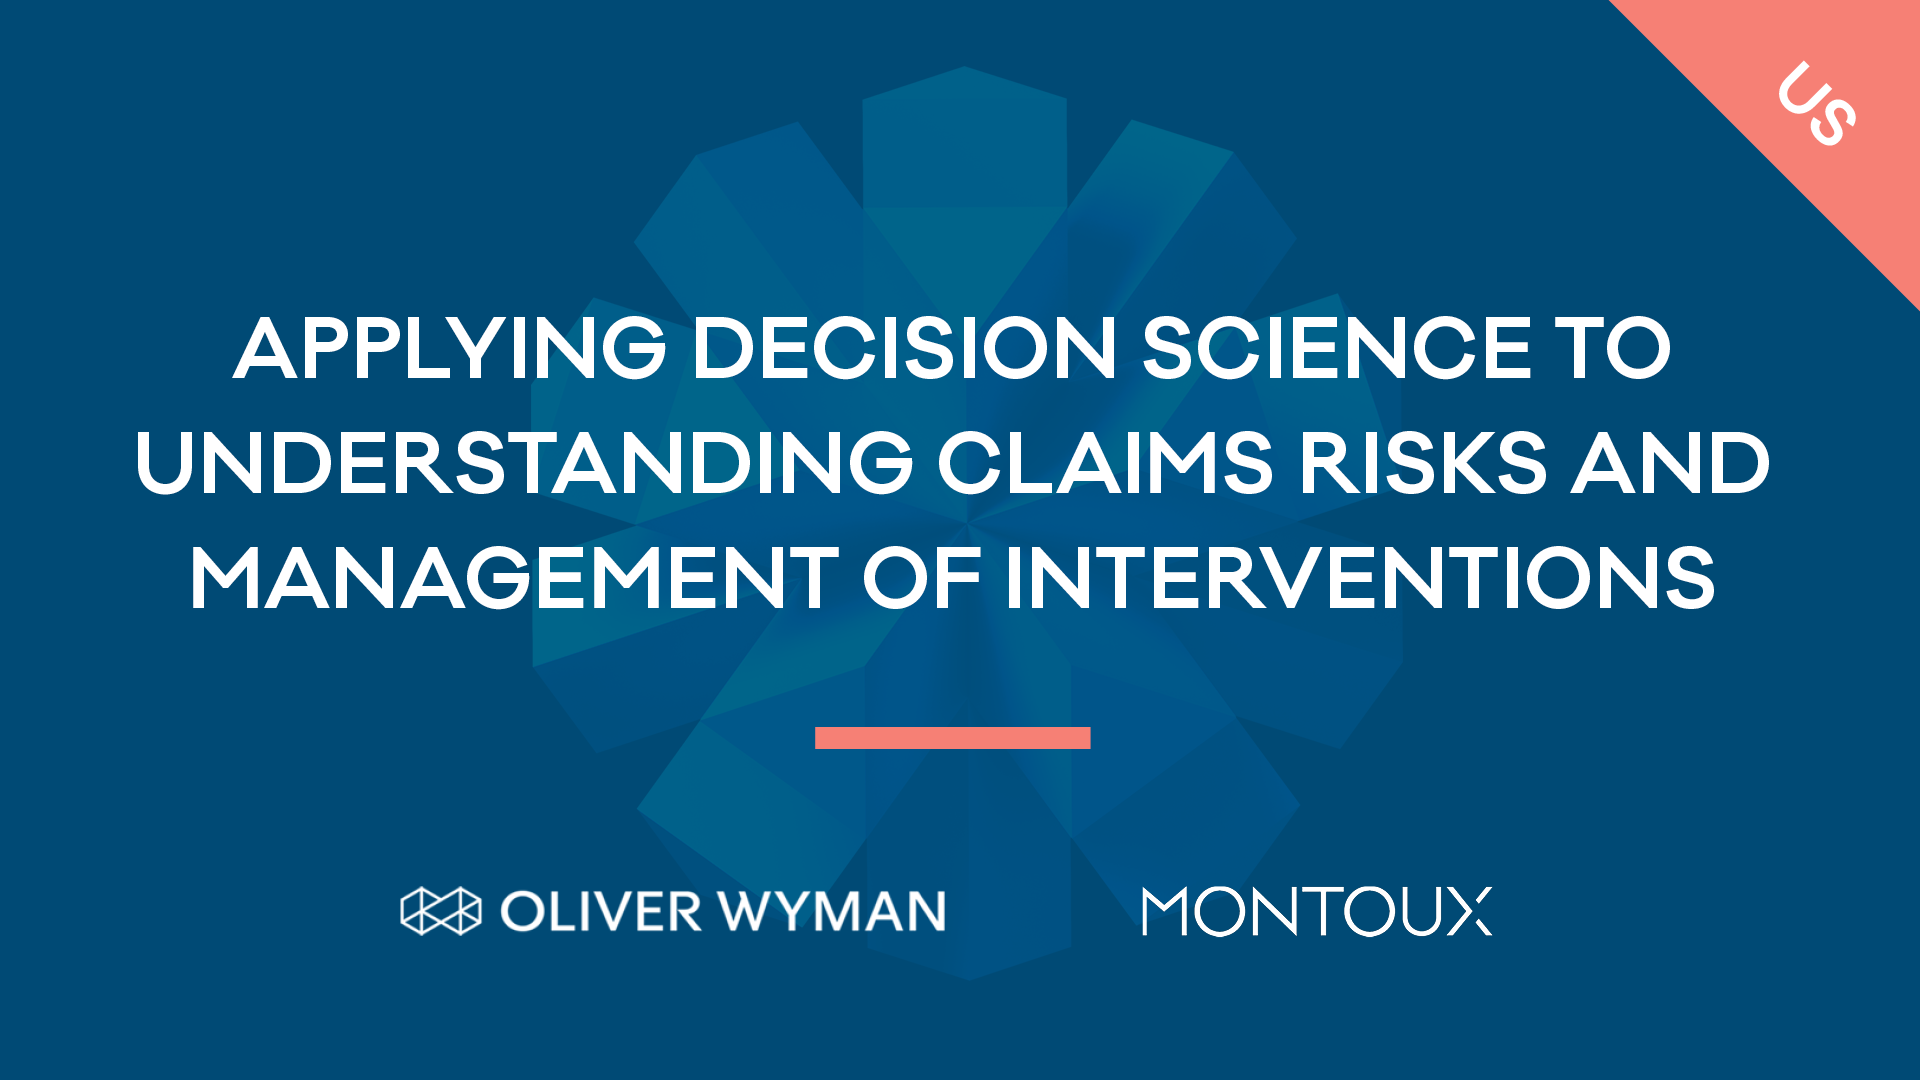 Applying Decision Science to understanding claims risks and management of interventions